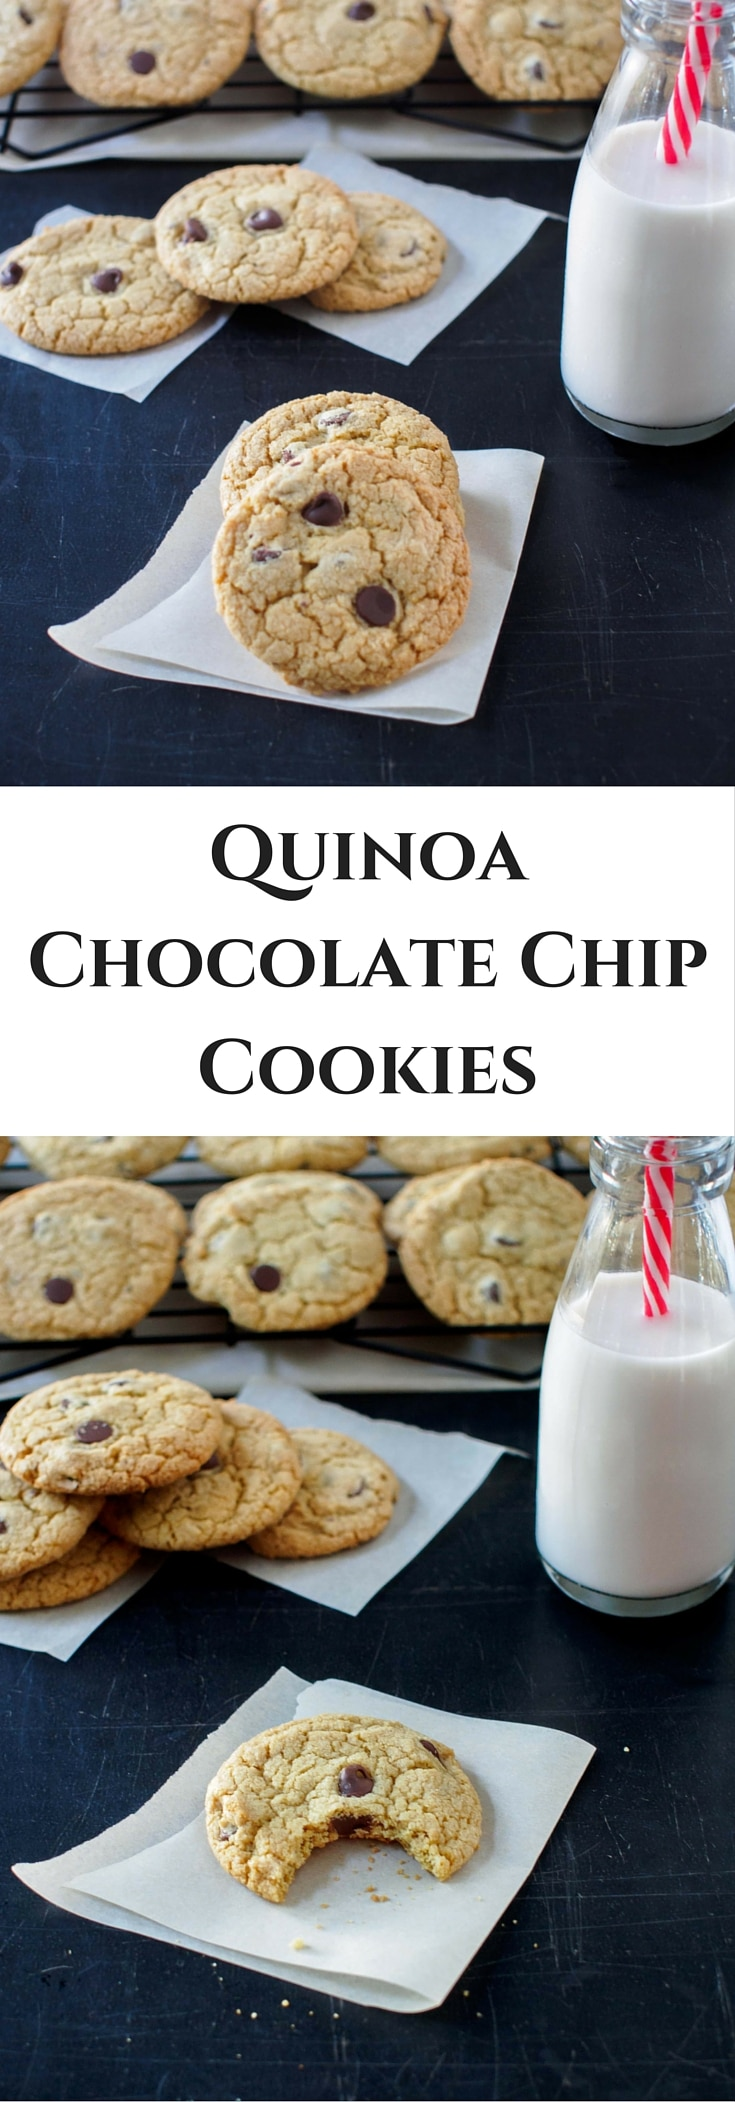 Quinoa Chocolate Chip Cookies